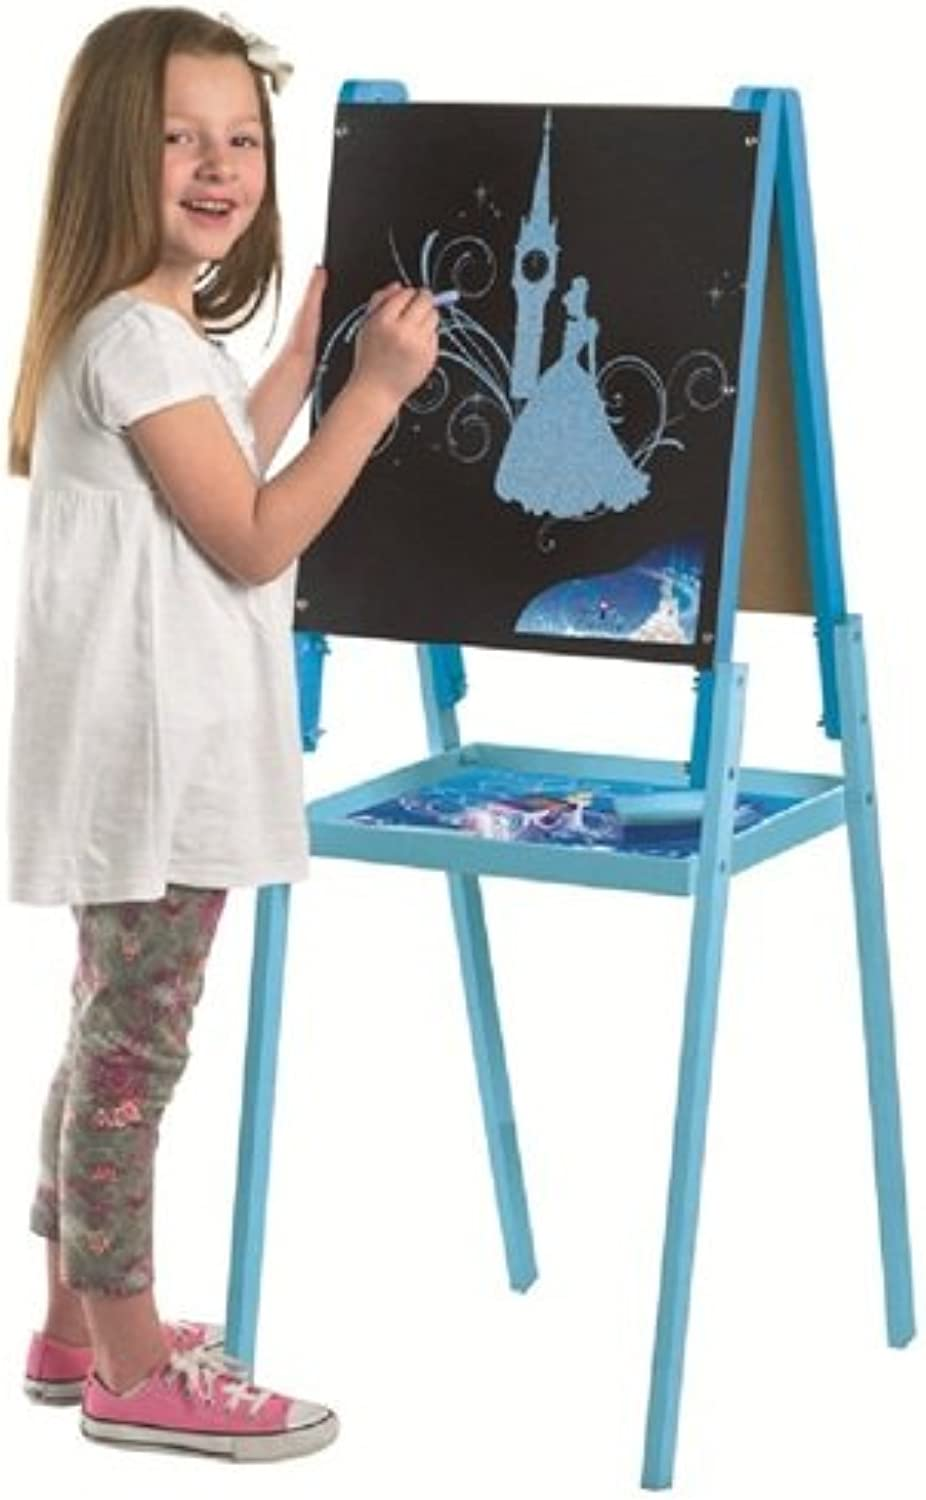 Disney Cinderella large wooden floor standing Art easel by New World Toys